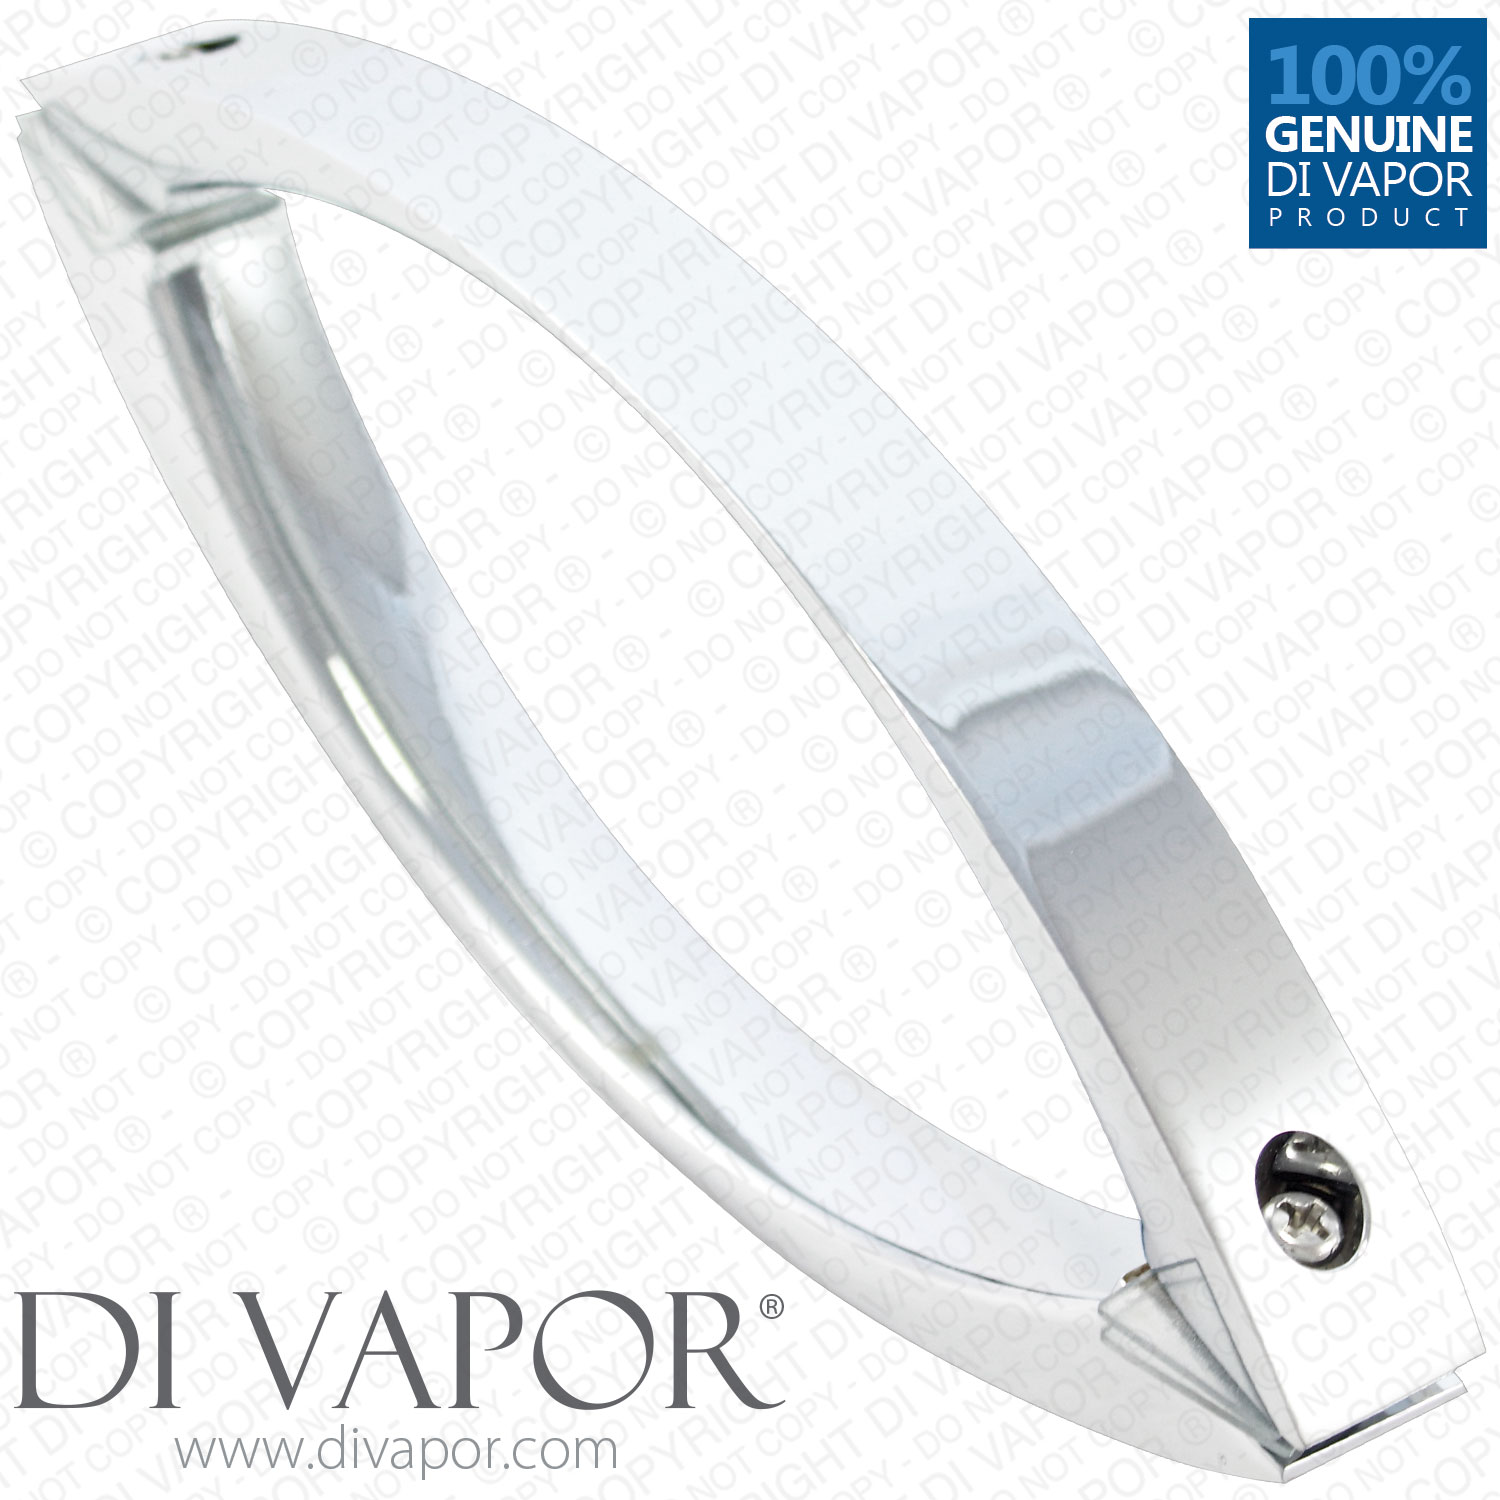 Di Vapor R 145mm Shower Door Handles Hole To